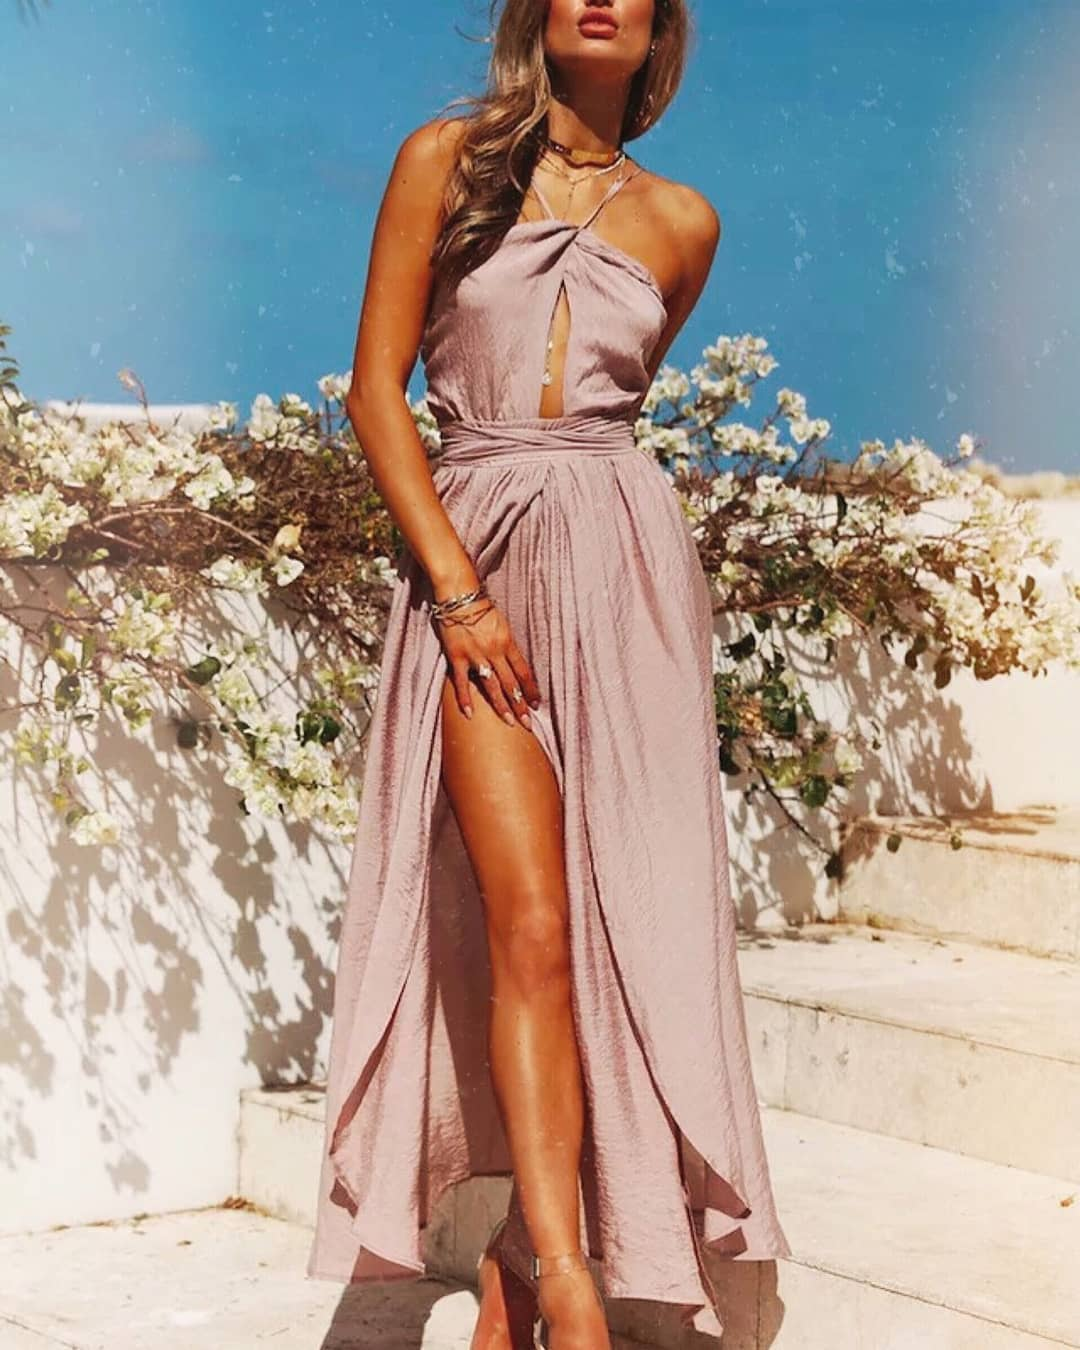 Light Pink Maxi Dress In Grecian Style With Spaghetti Halter Neck For Summer 2020